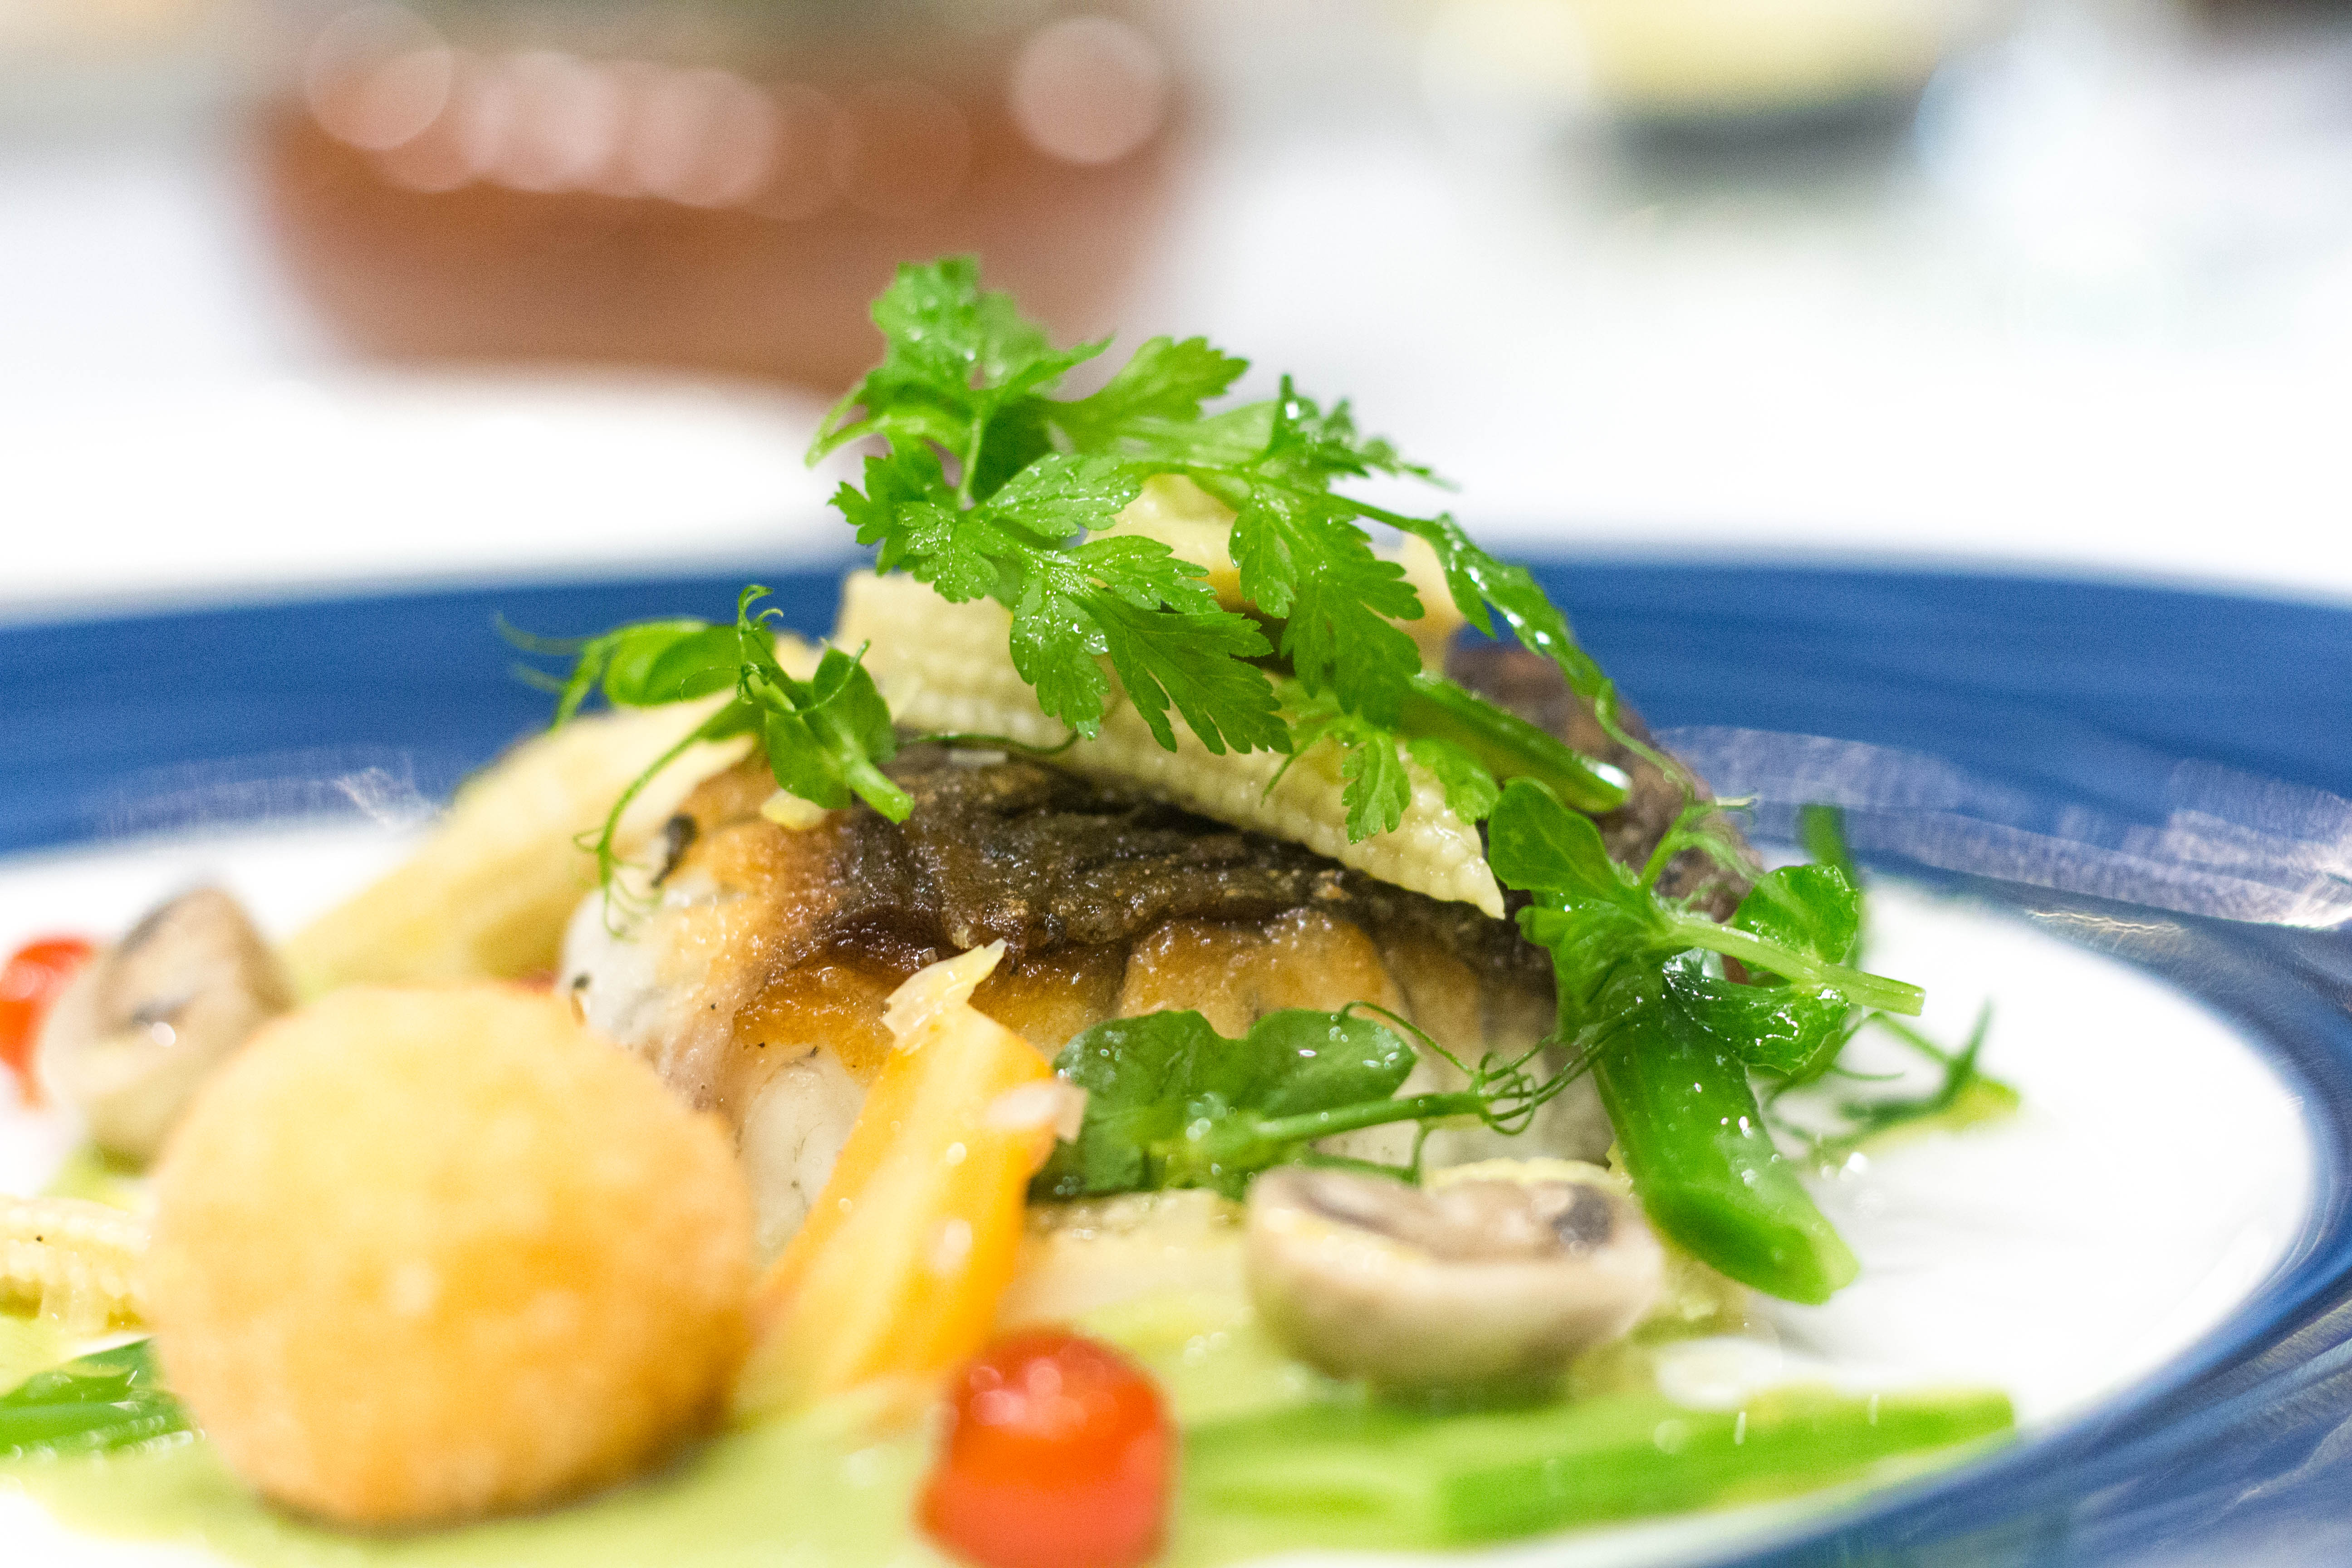 RWS Fratelli Trattoria captivates with gastronomic revelry in newly launched creations - Alvinology